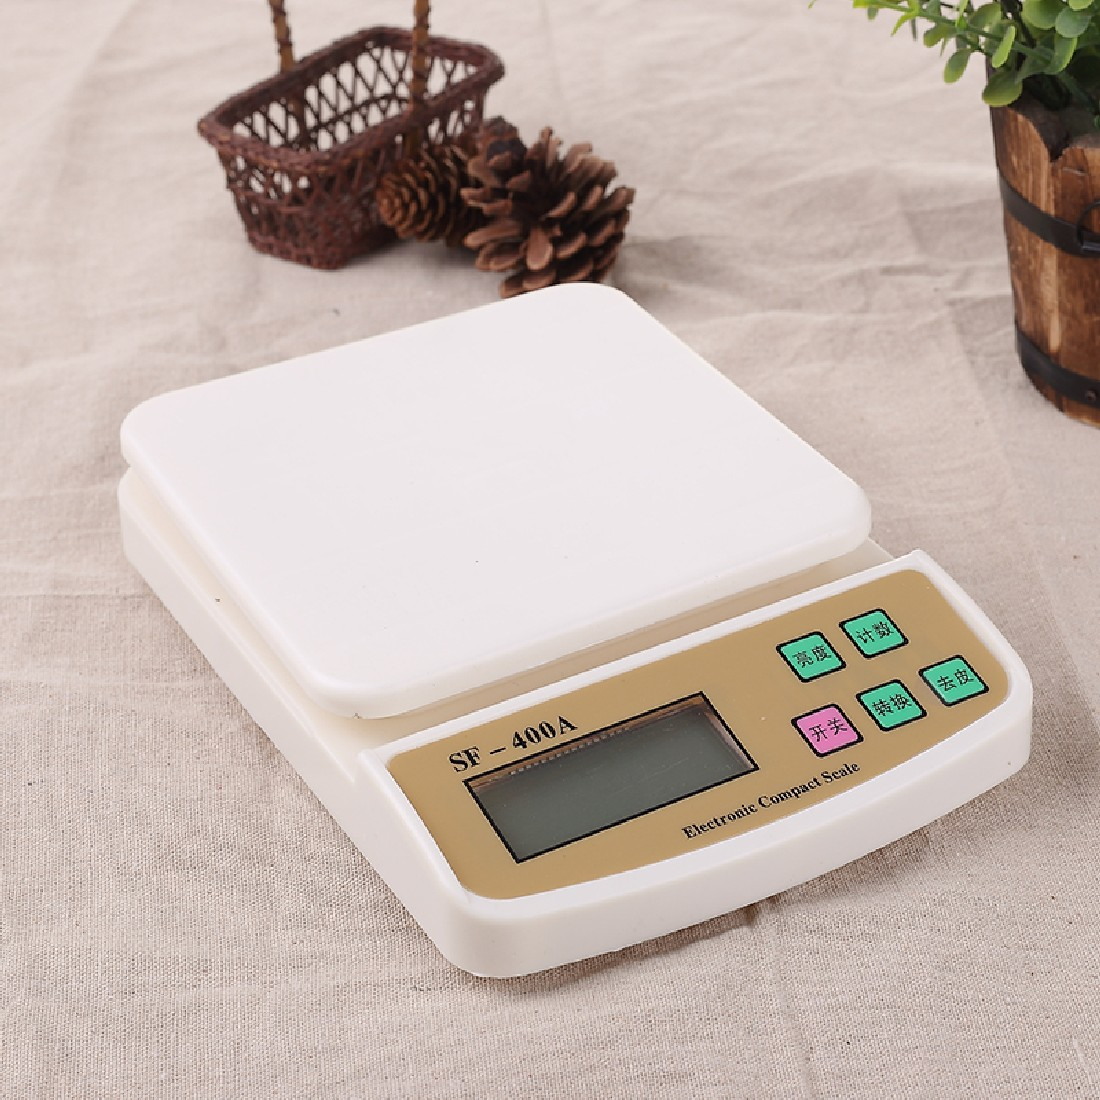 Kitchen Foods Scale Digital Electronic Scales Pocket 10Kg/1g Kitchen Weighing Scale LCD Display Backlight Scales